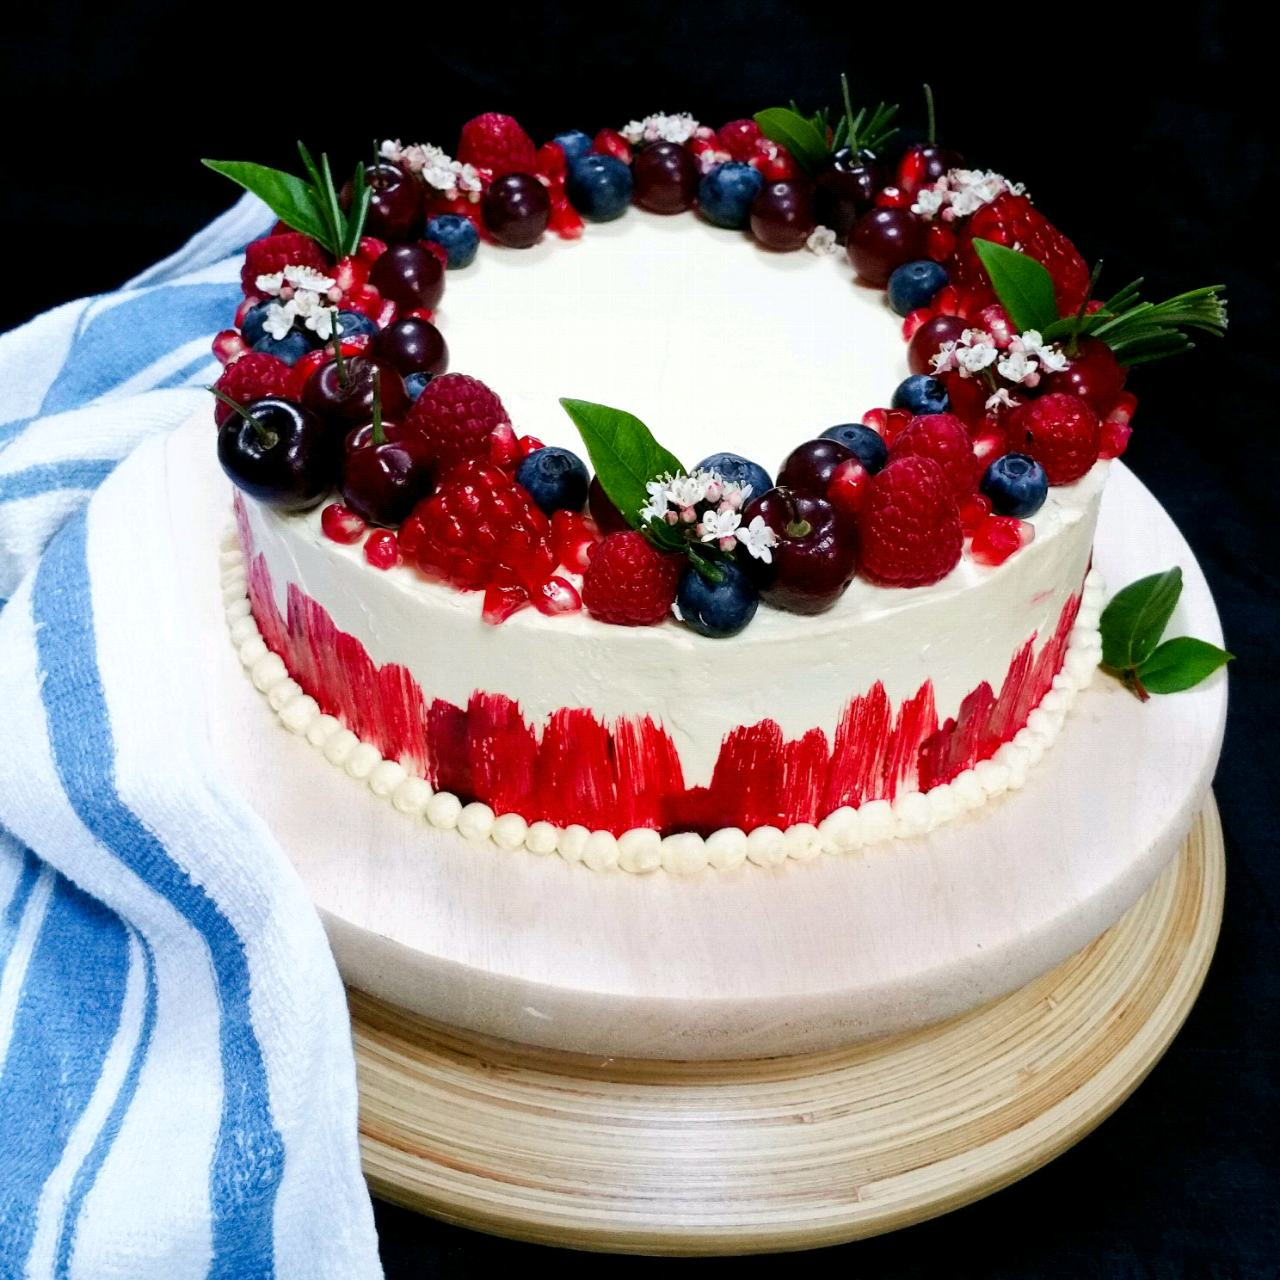 Winter Fruits Cake